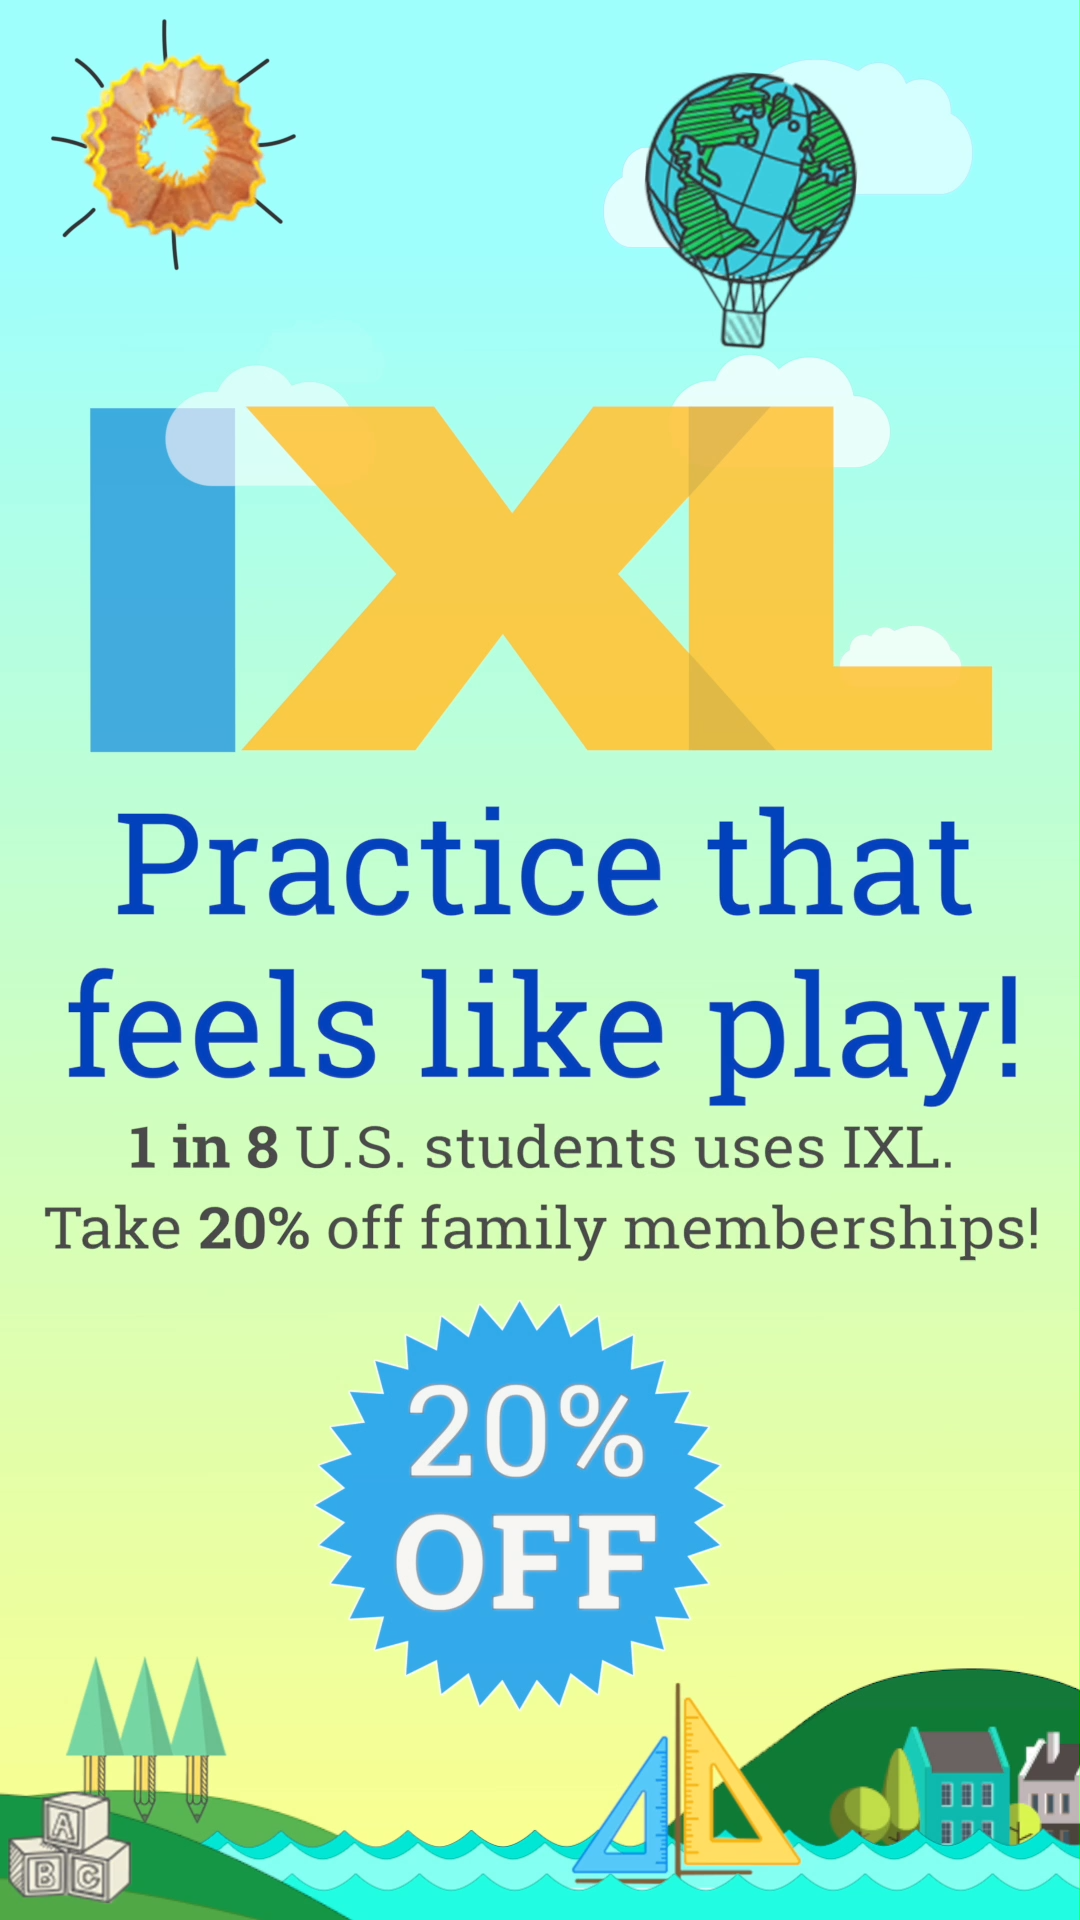 Join IXL today and get 20% off your membership! Offer applies to new IXL family memberships. IXL is the world's most popular subscription-based learning site for K-12. Used by over 5 million students, IXL provides unlimited practice in more than 7,500 topics, covering math, language arts, science, and social studies.